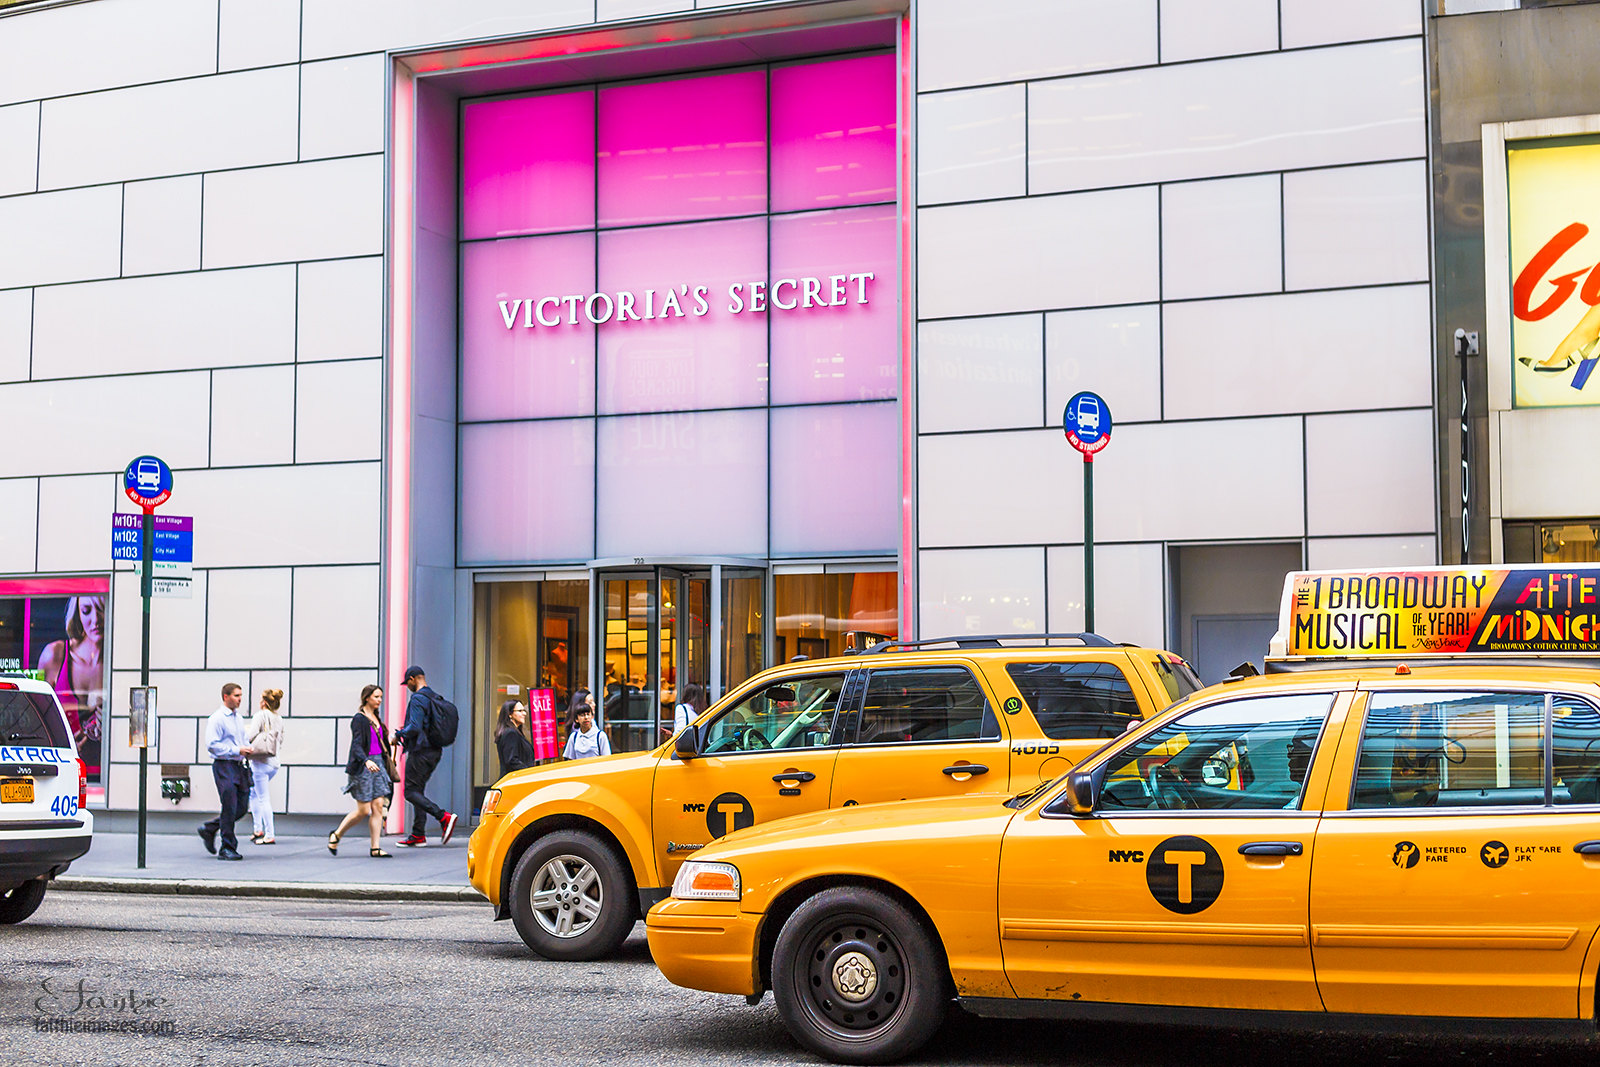 Victoria's Secret shop in New York